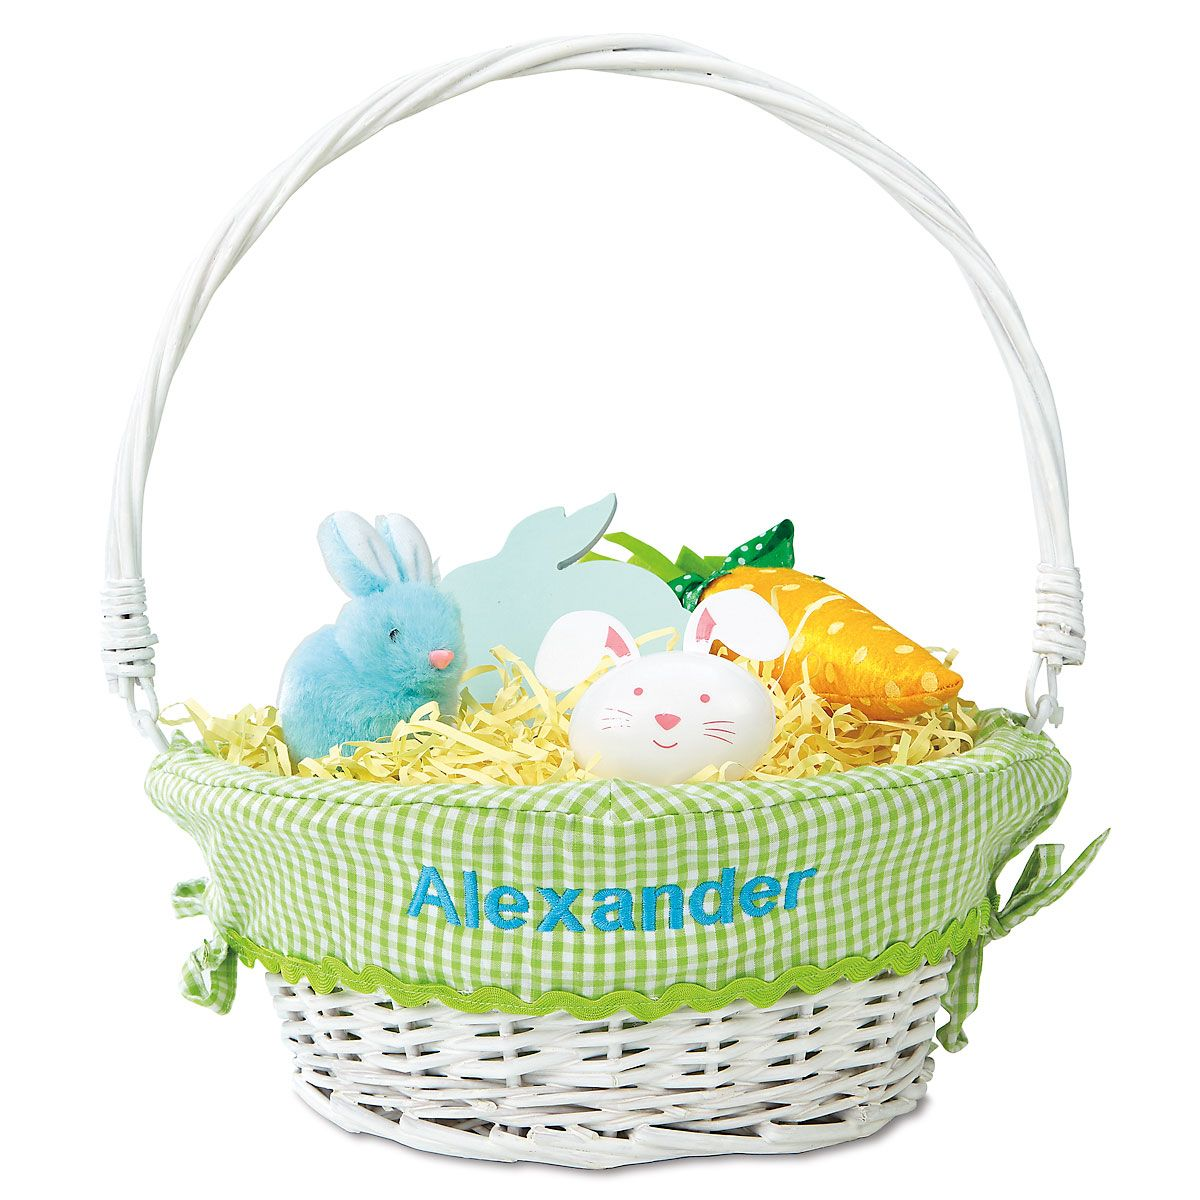 Personalized Wicker Easter Basket with Green Liner